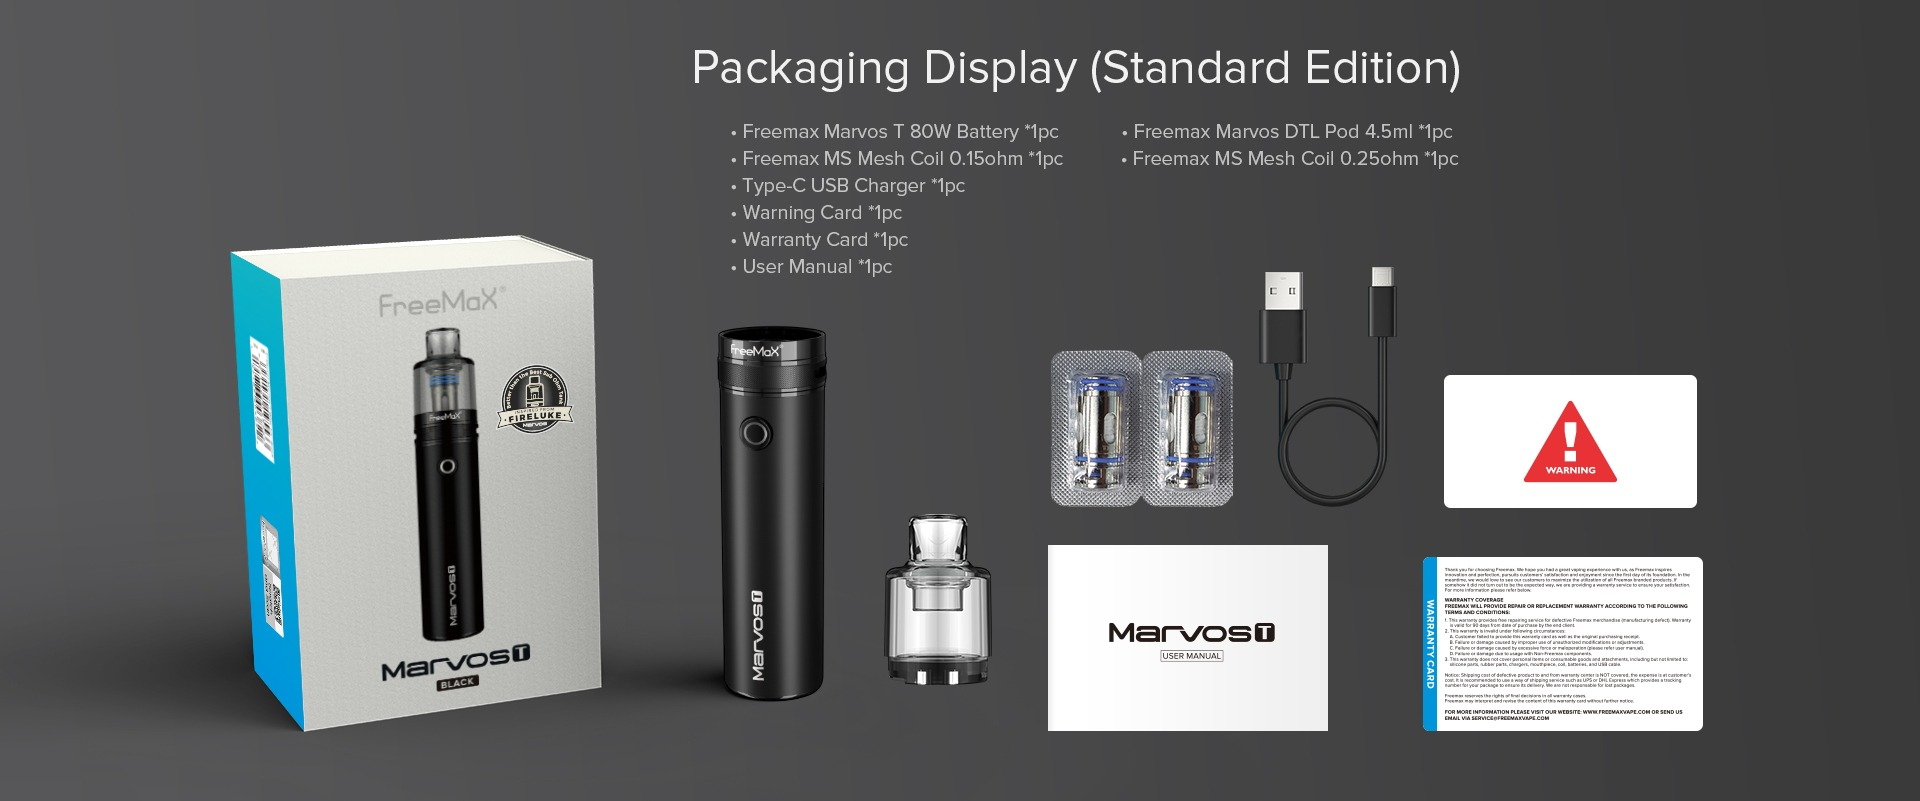 Marvos T 80W Kit - Packaging Display Standard Edition)